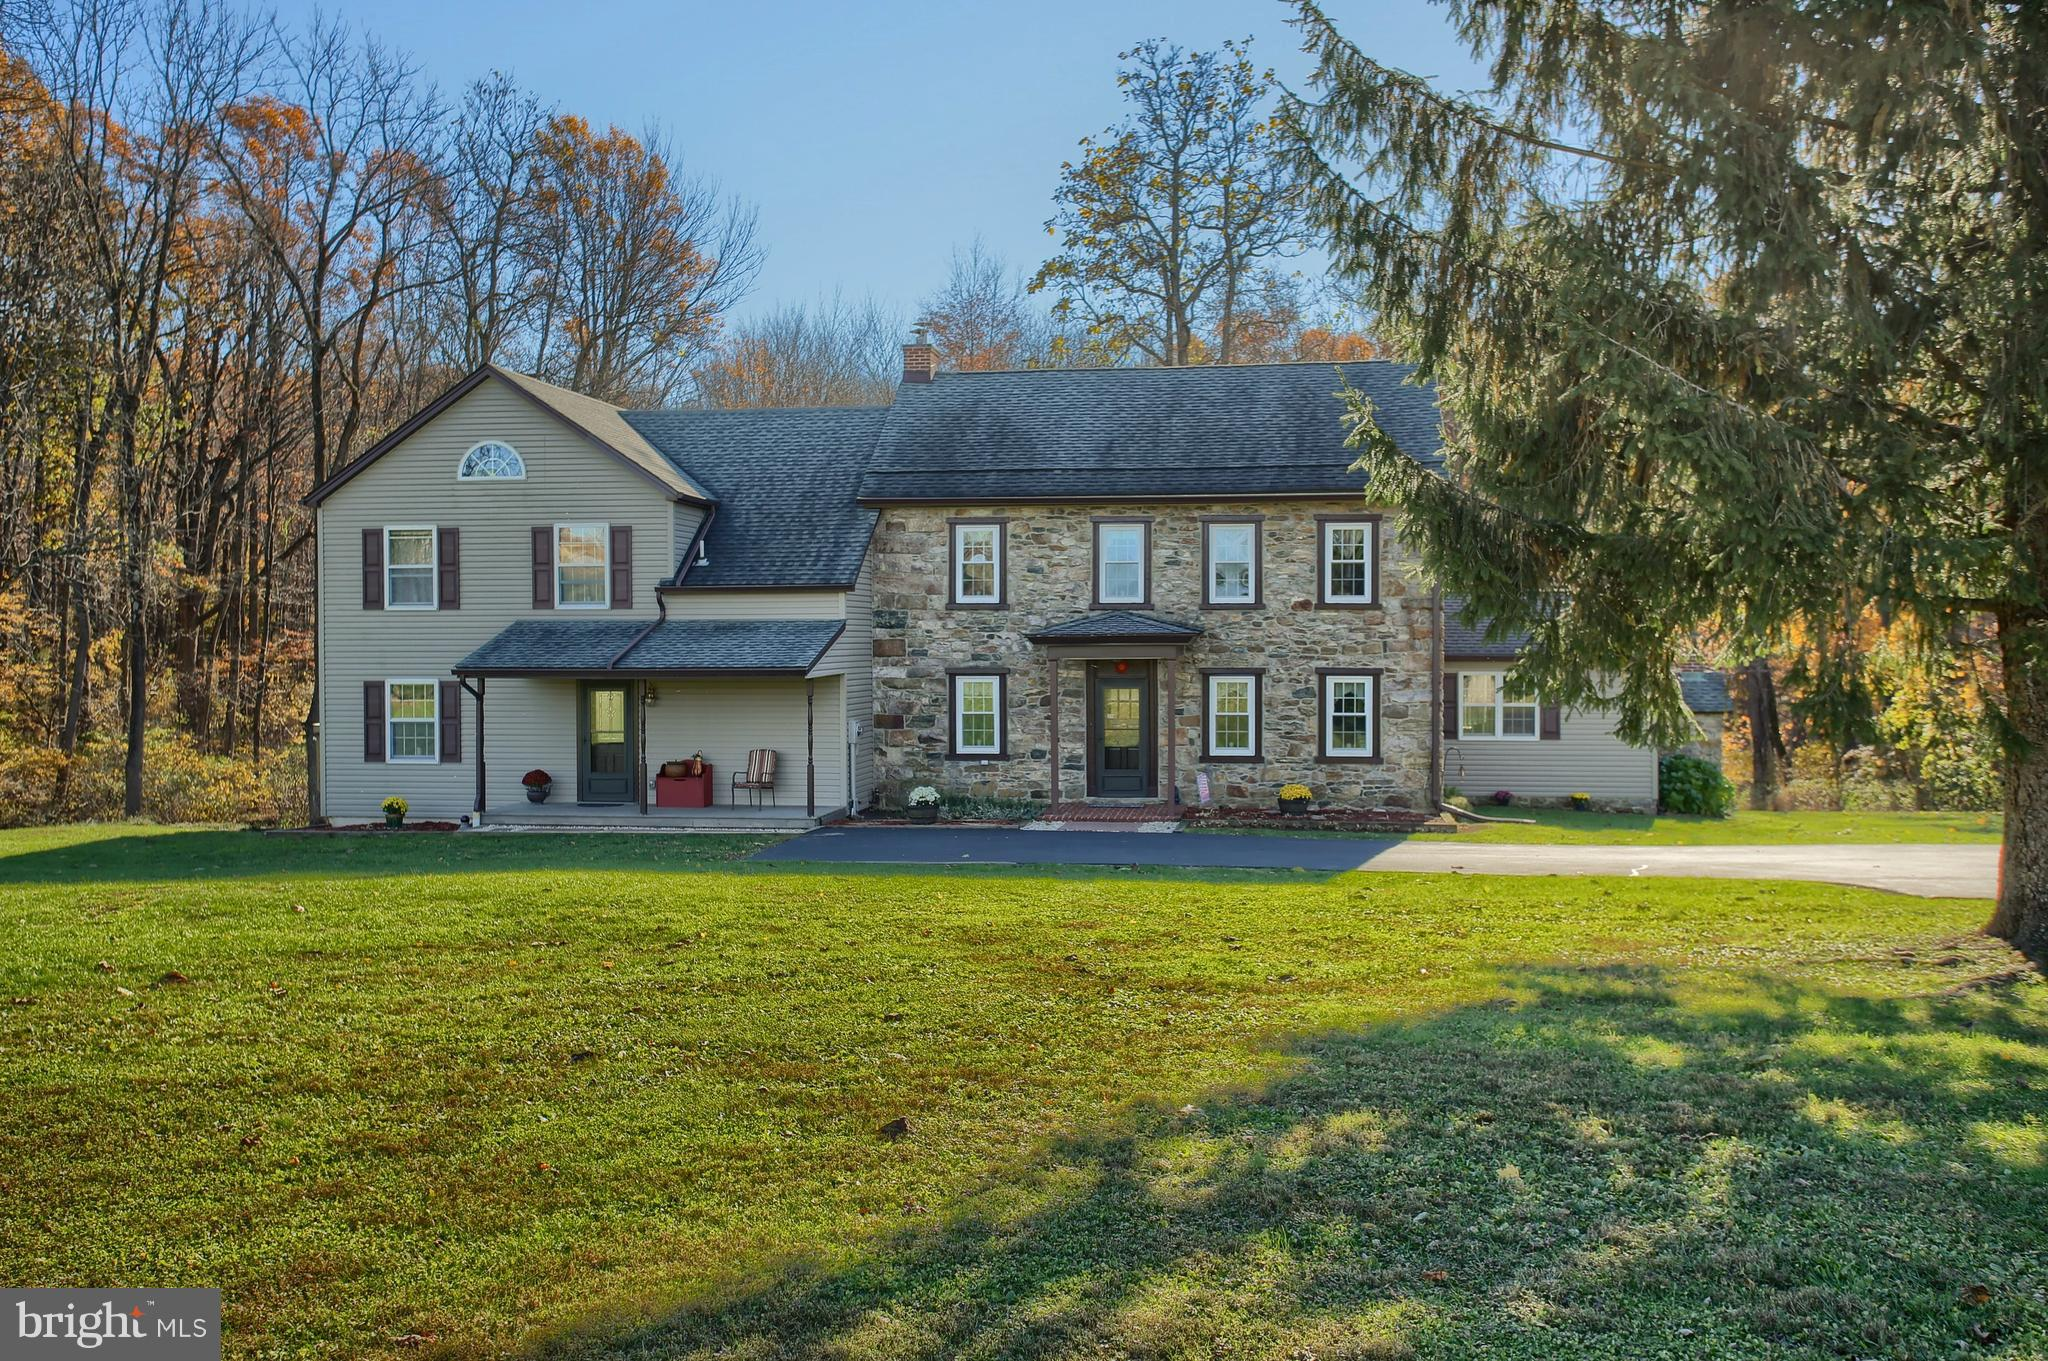 96 GREENHOUSE LANE, BARTO, PA 19504